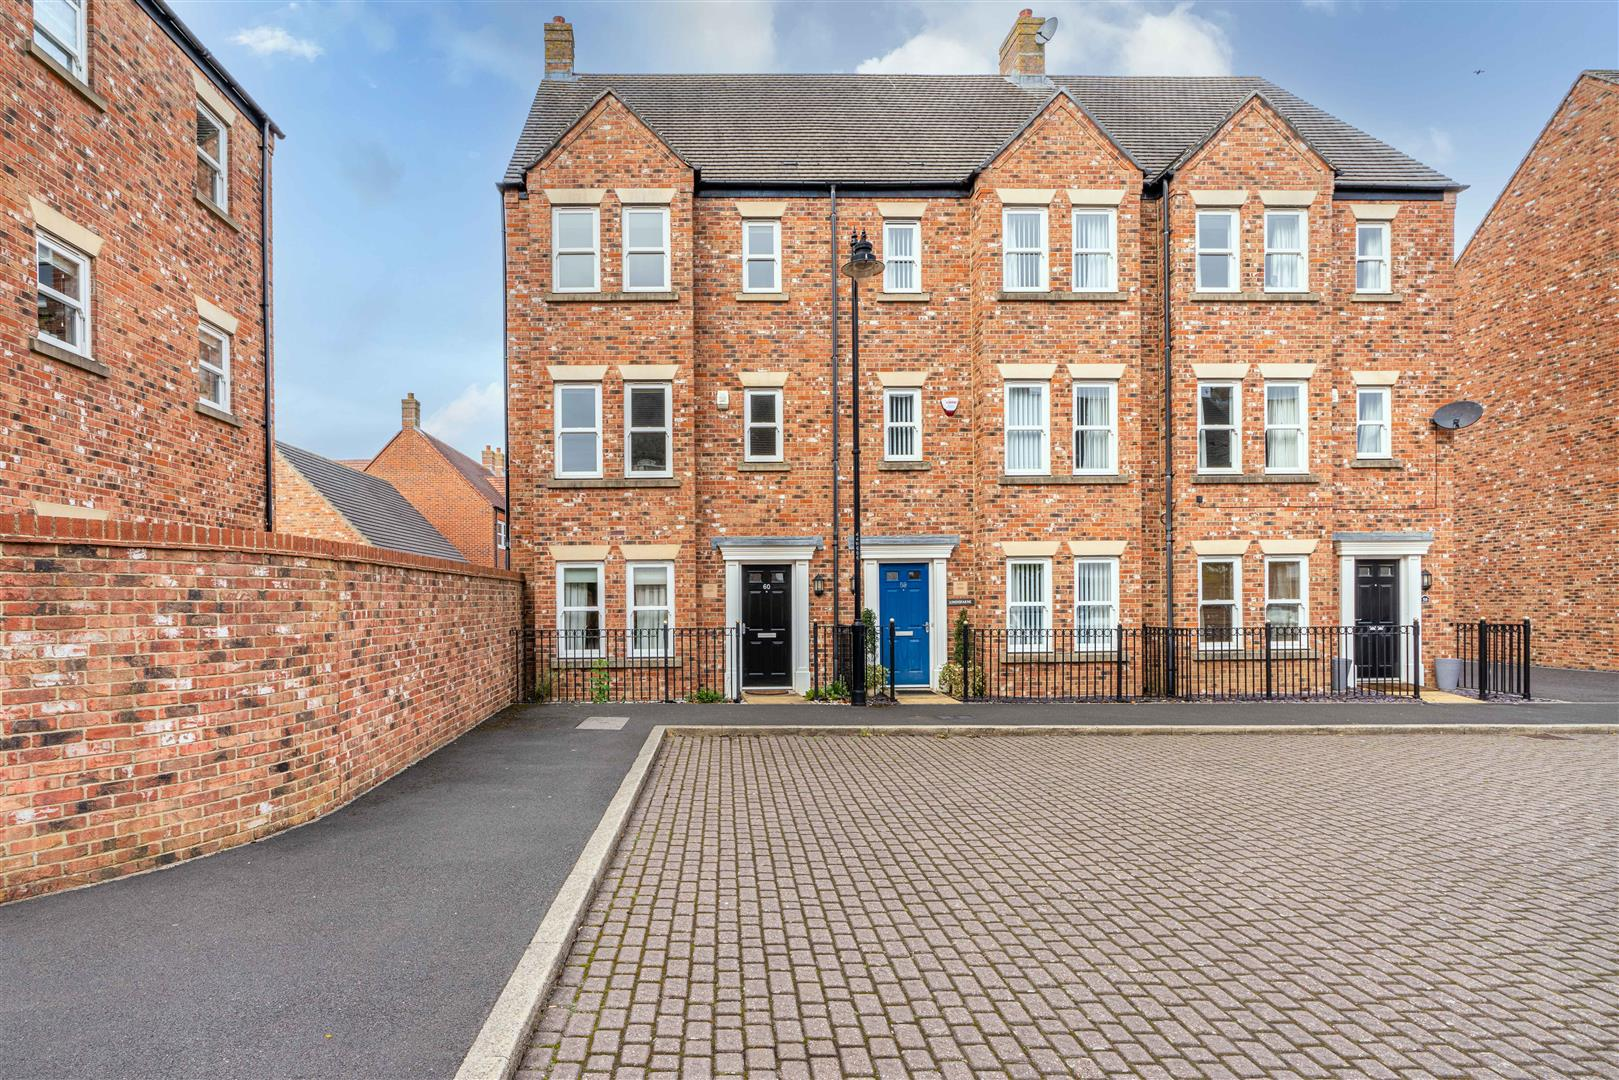 3 bed town house for sale in Warkworth Woods, Newcastle Upon Tyne, NE3